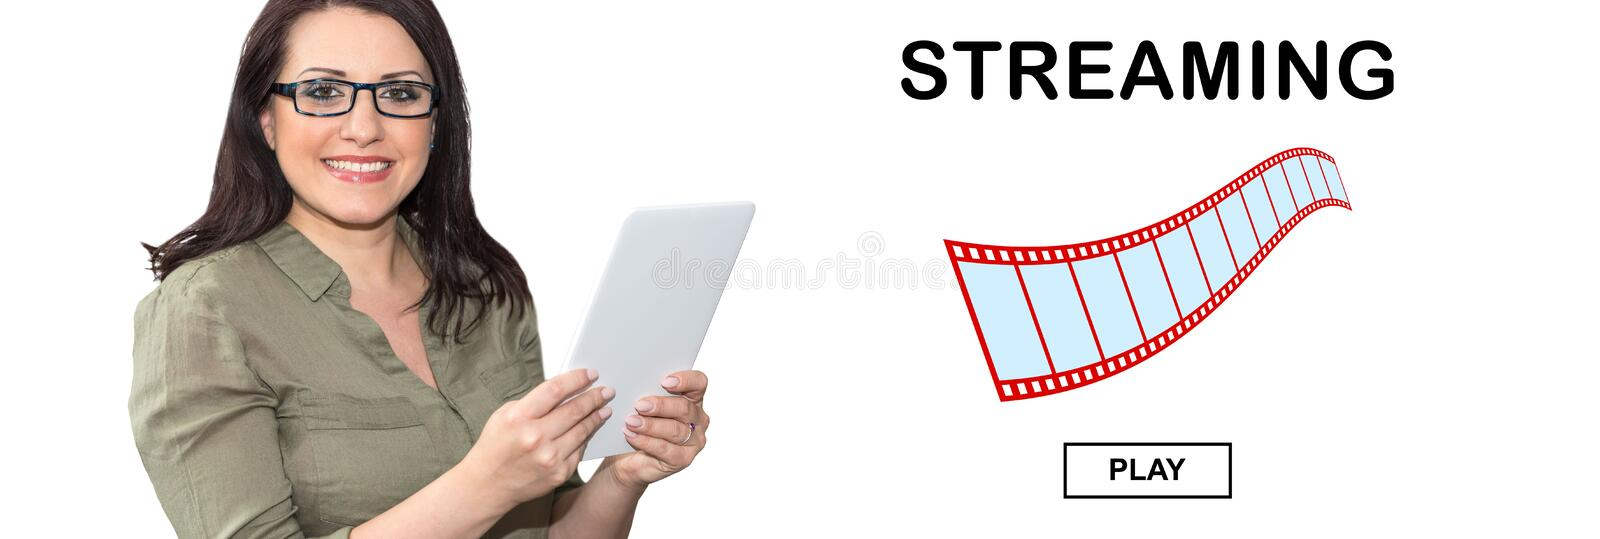 Concept of video streaming royalty free stock photography